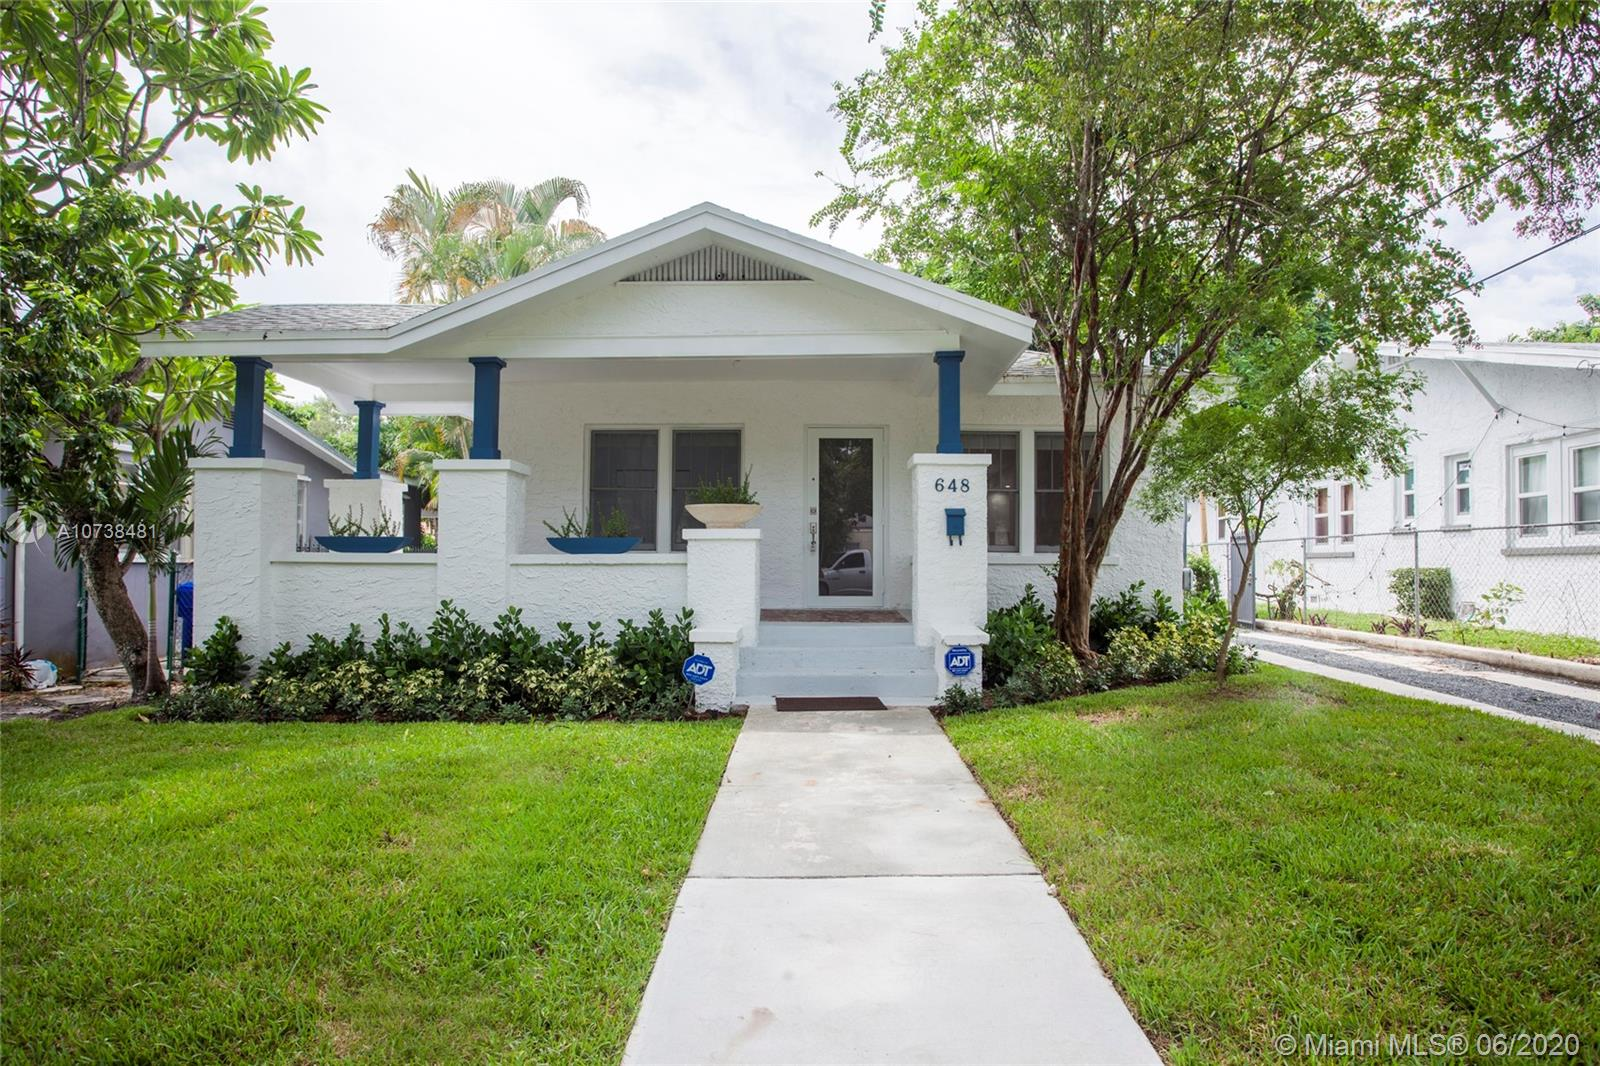 648 NE 71st St  For Sale A10738481, FL